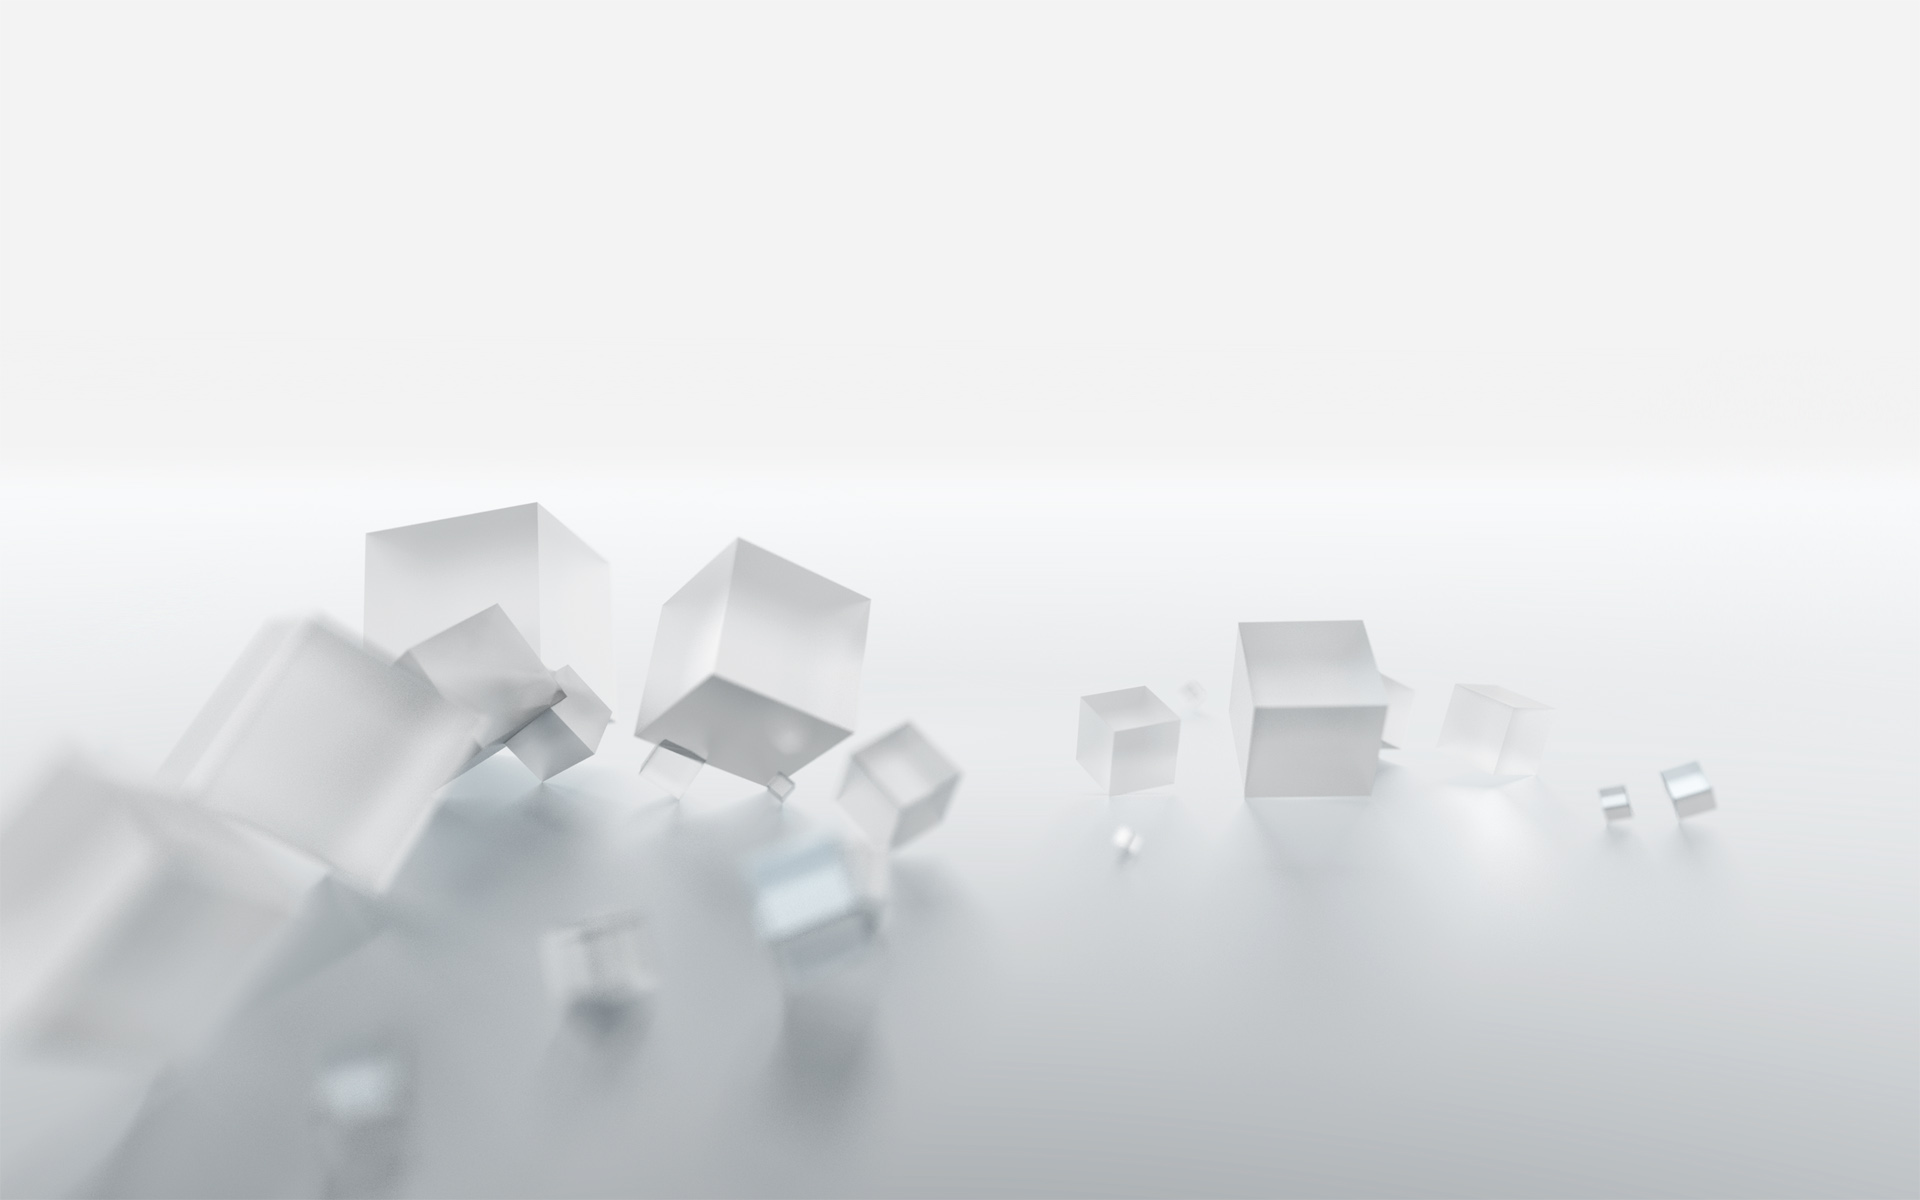 Download 52 Clean White Wallpapers For Desktop & Laptops